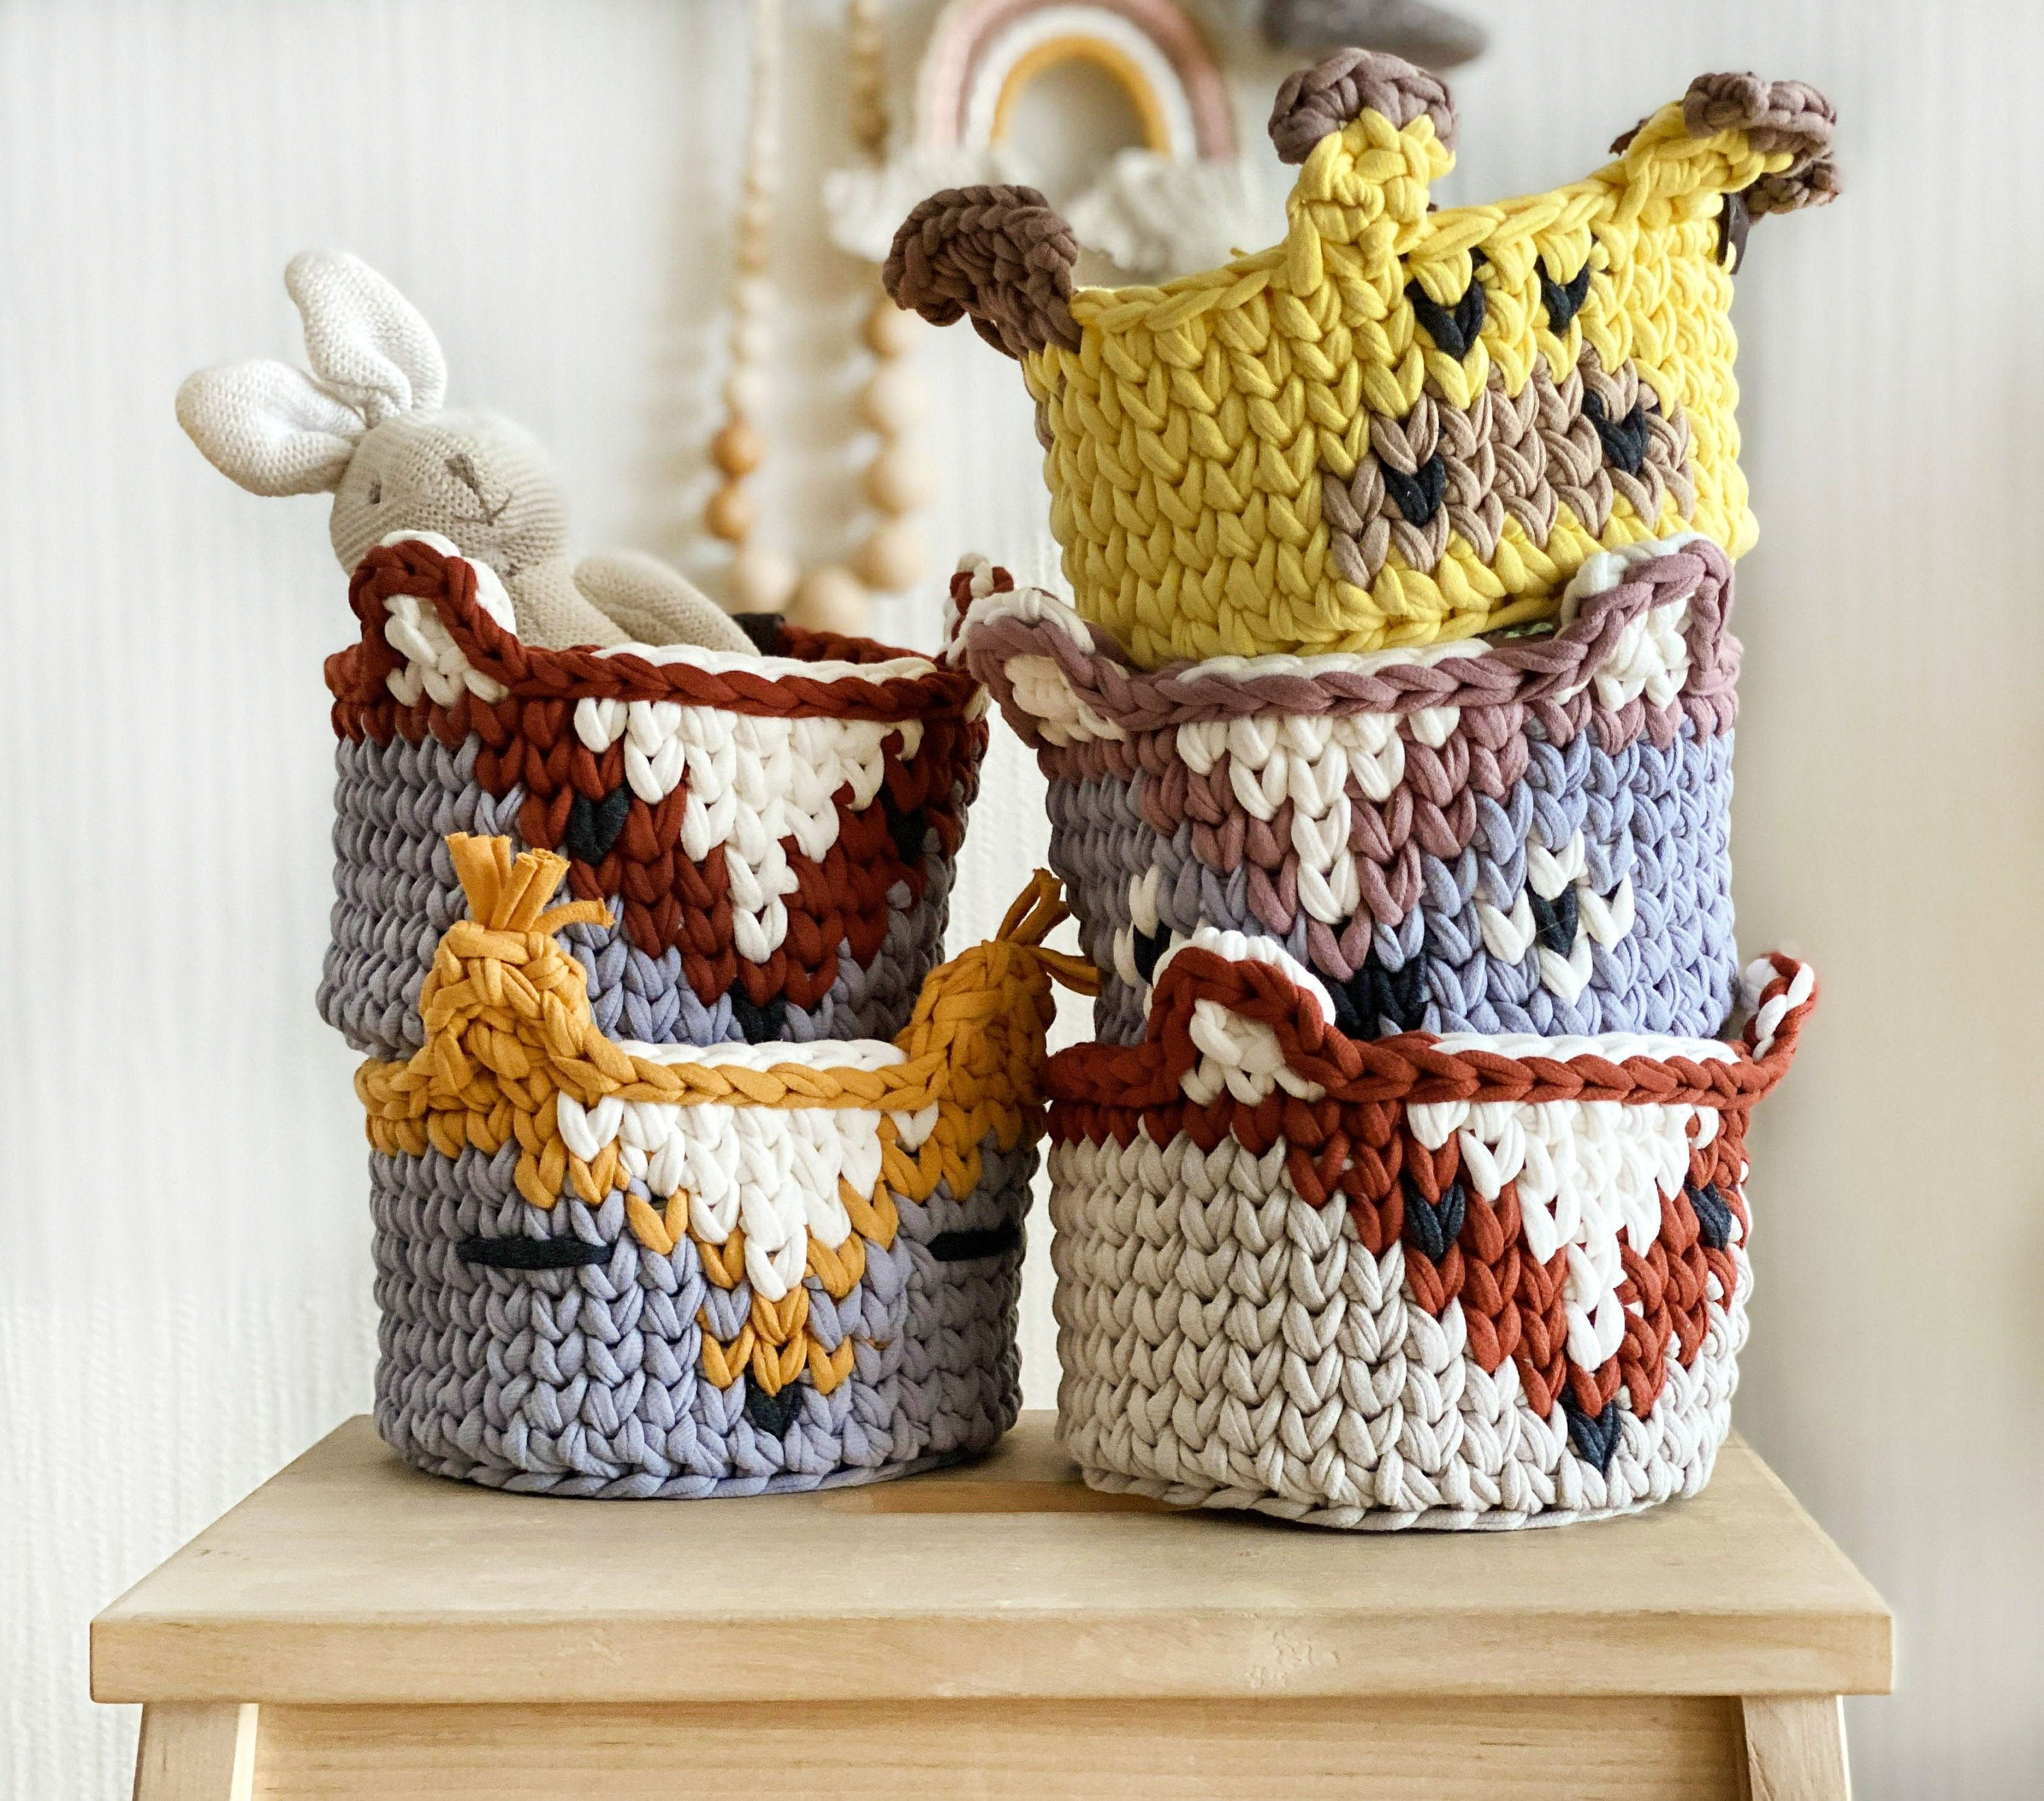 Animal Storage Basket To Kidsroom Round Crochet Basket Toy Basket Toy Boxes Toy Box Nursery Basket Animal Nursery Decor V 2020 G